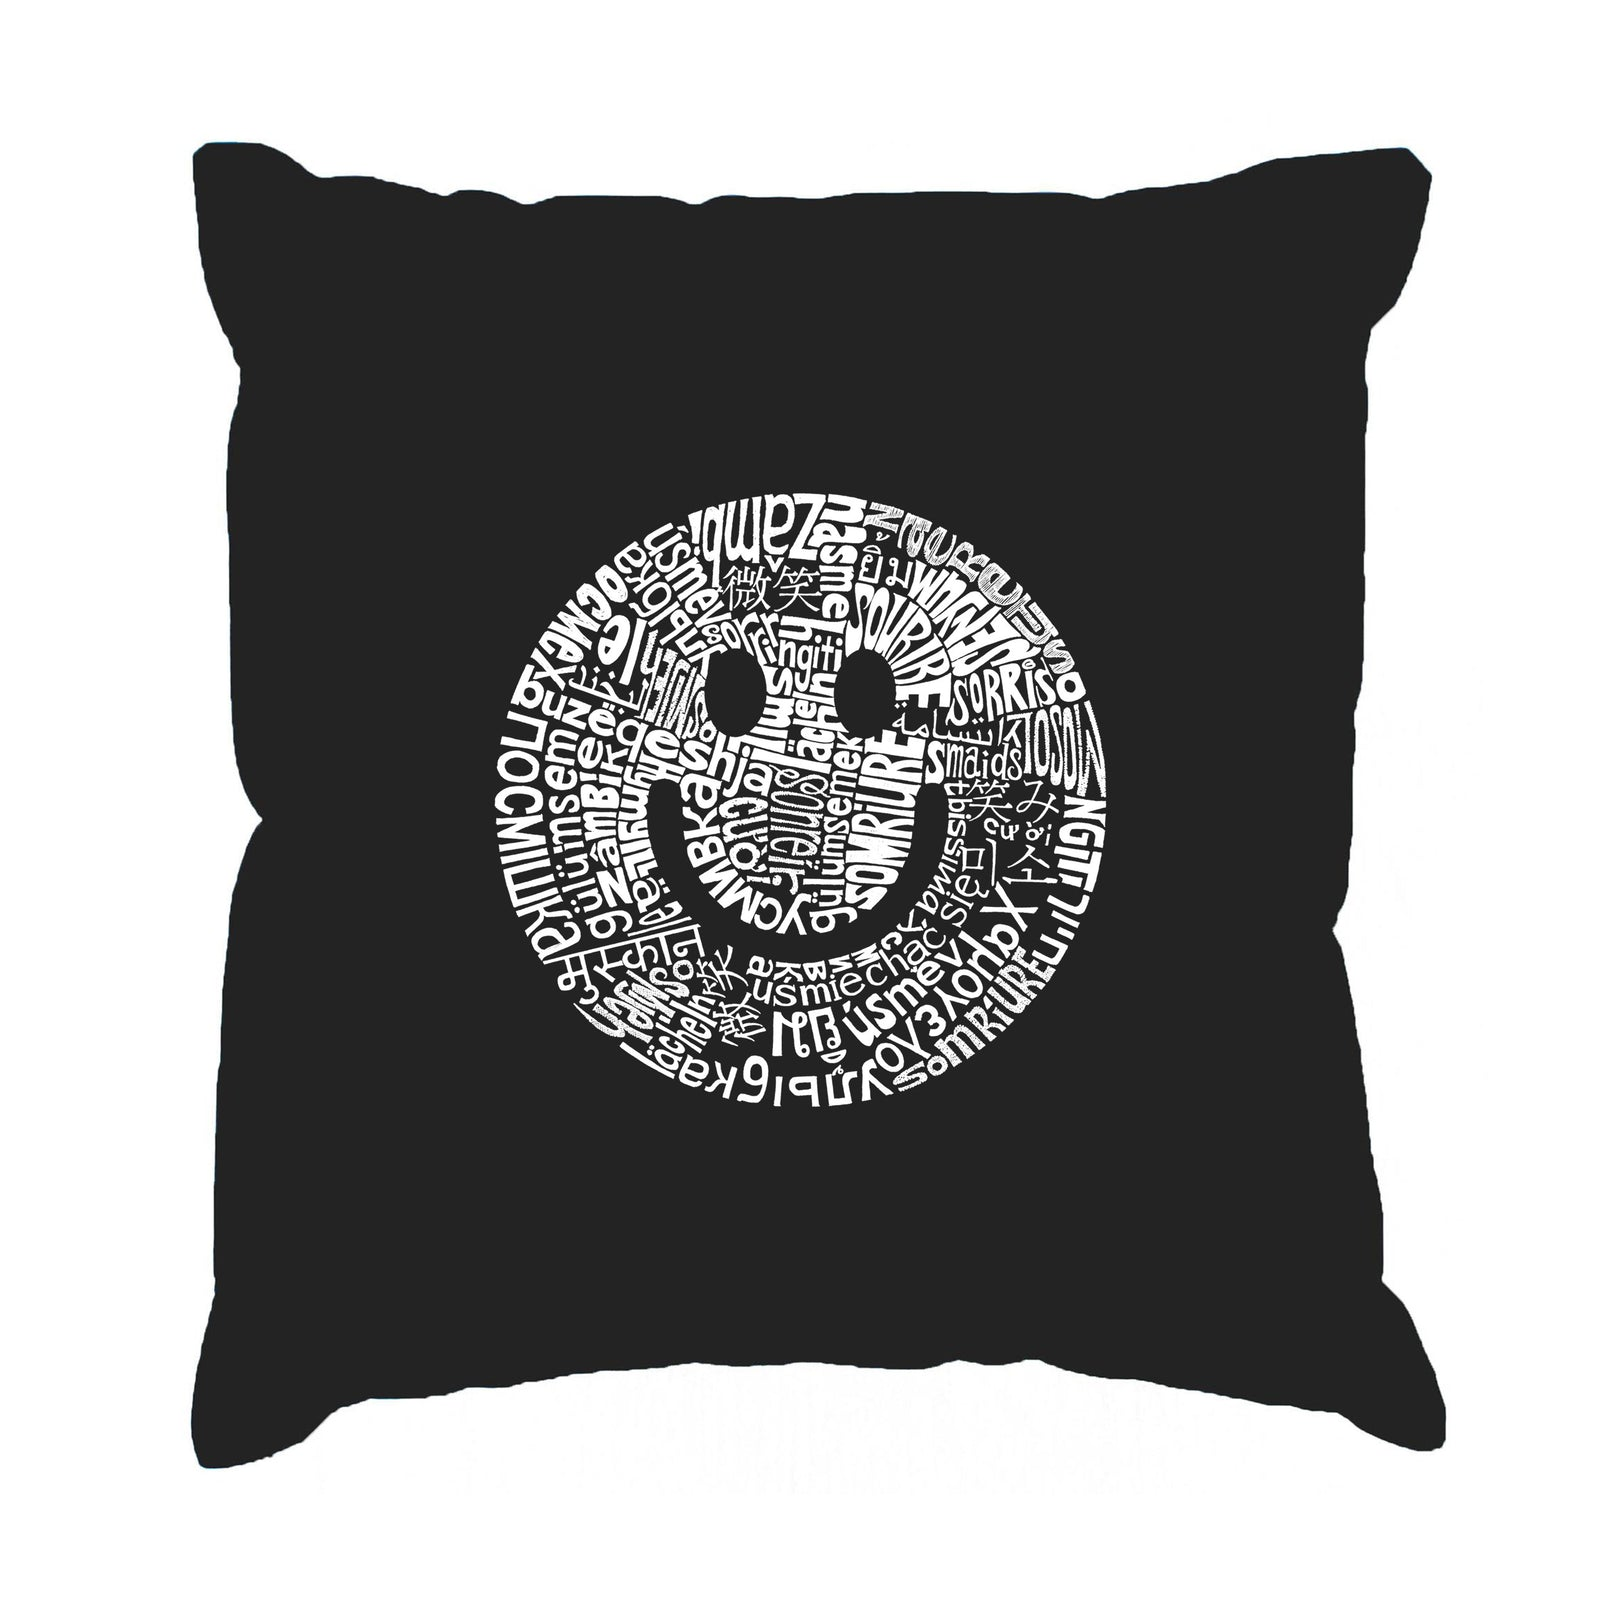 Throw Pillow Cover - SMILE IN DIFFERENT LANGUAGES